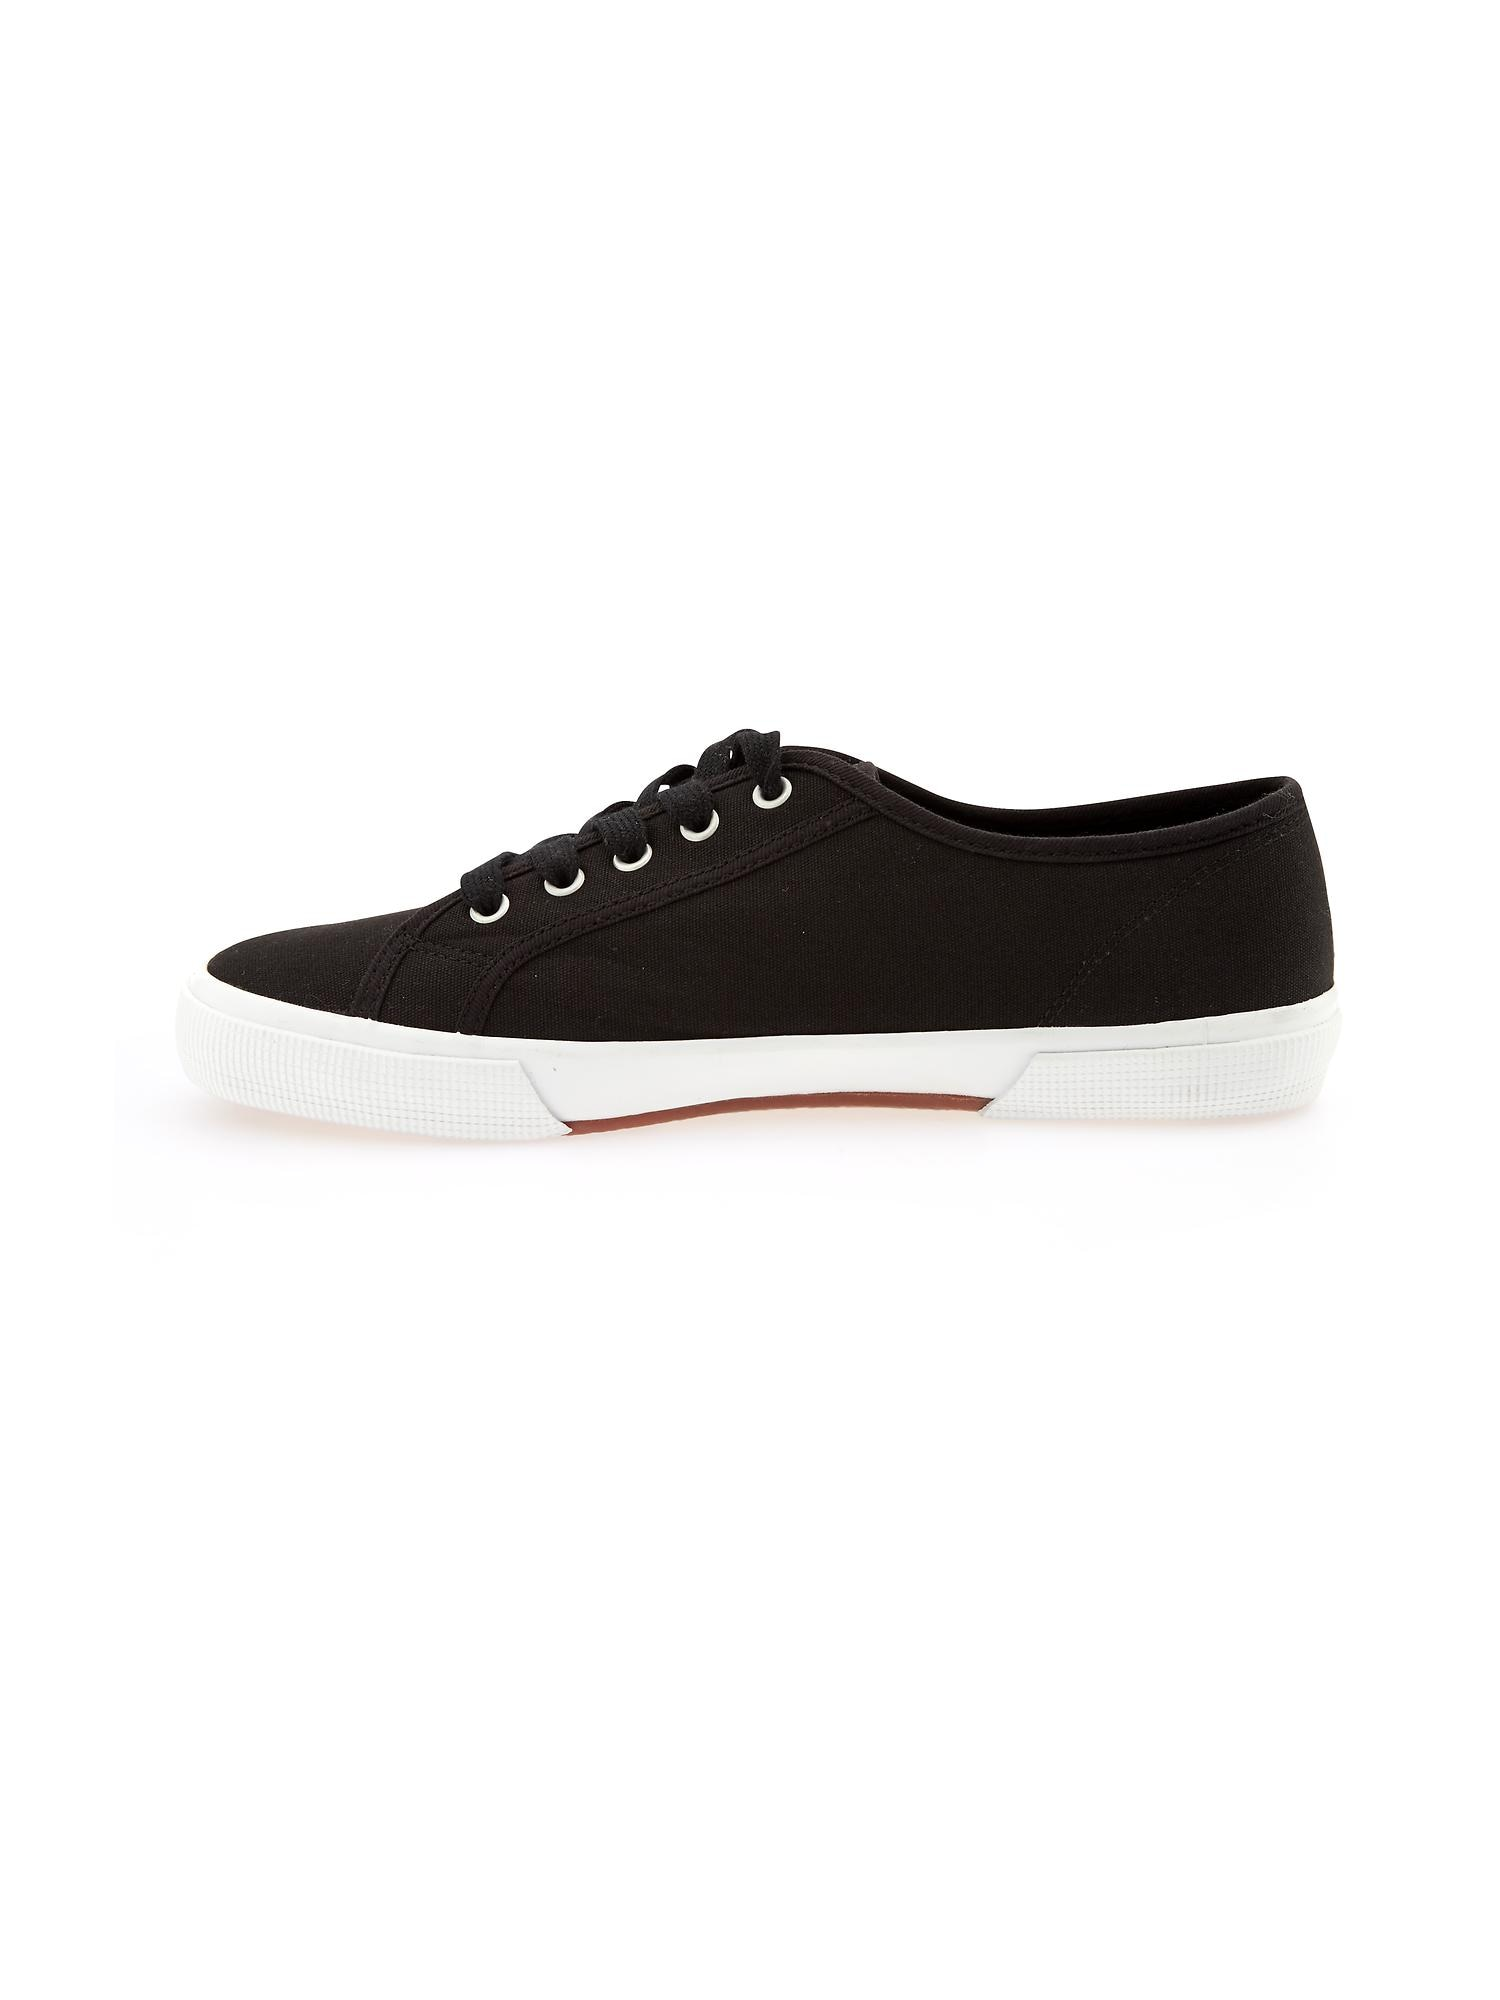 Canvas Sneakers for Women | Old Navy